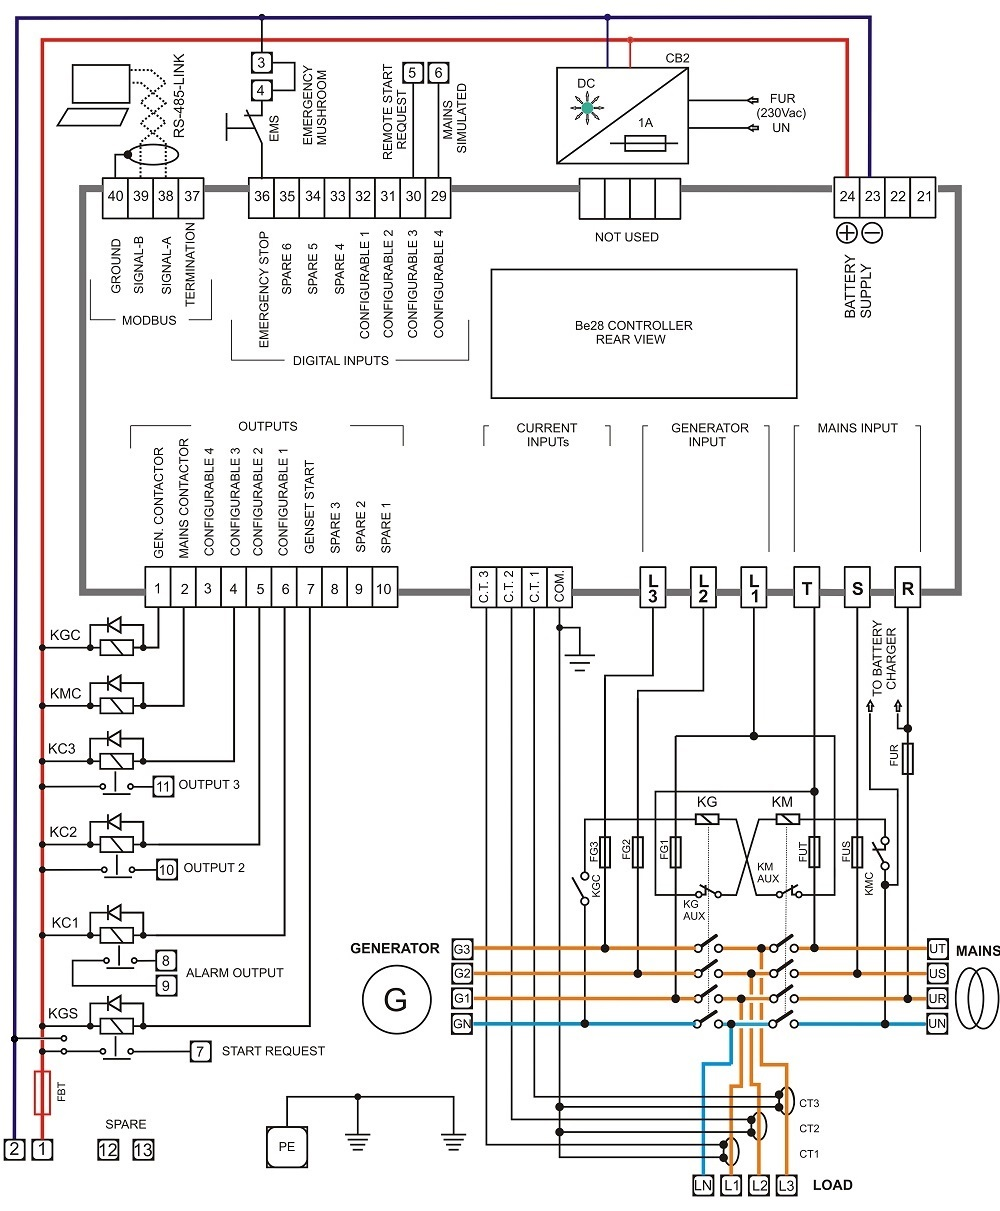 ford falcon ignition switch wiring diagram images 66 ford f100 ford falcon ignition switch wiring diagram images 66 ford f100 ignition switch wiring diagram 66 diagram safety switch wiring diagram on 1964 ford